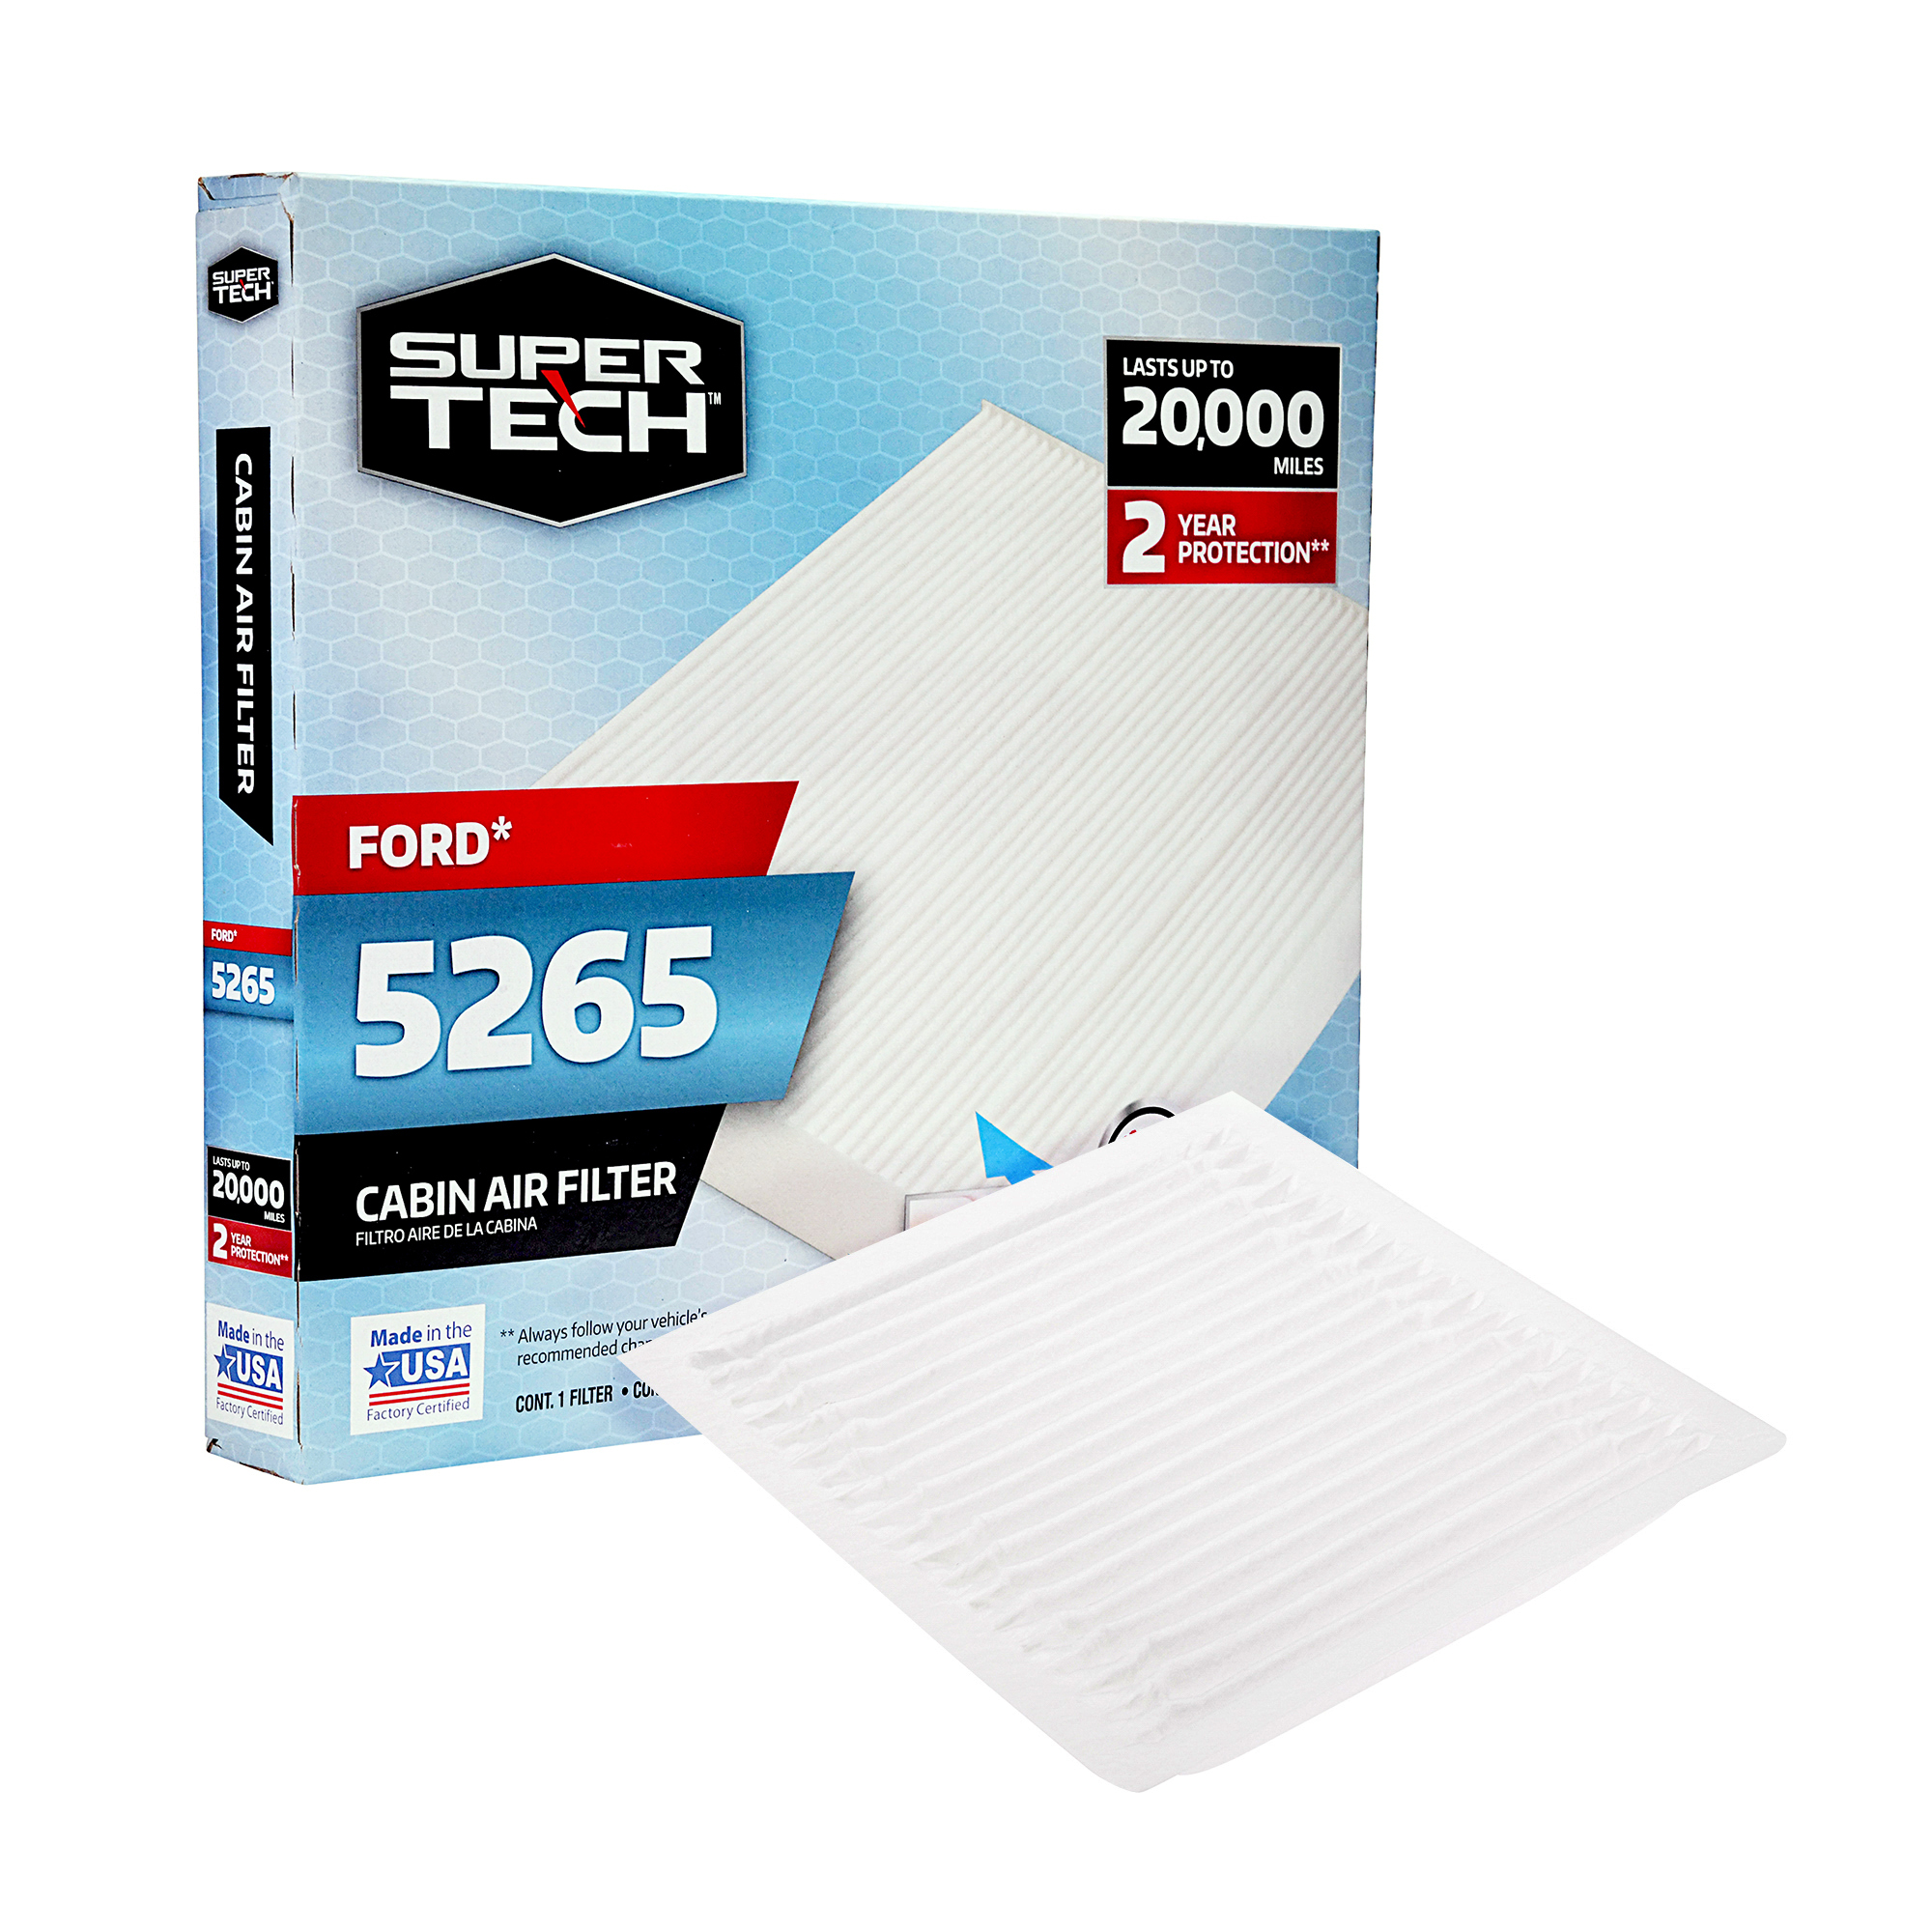 SuperTech Cabin Air Filter 5265, Replacement Air/Dust Filter for Ford